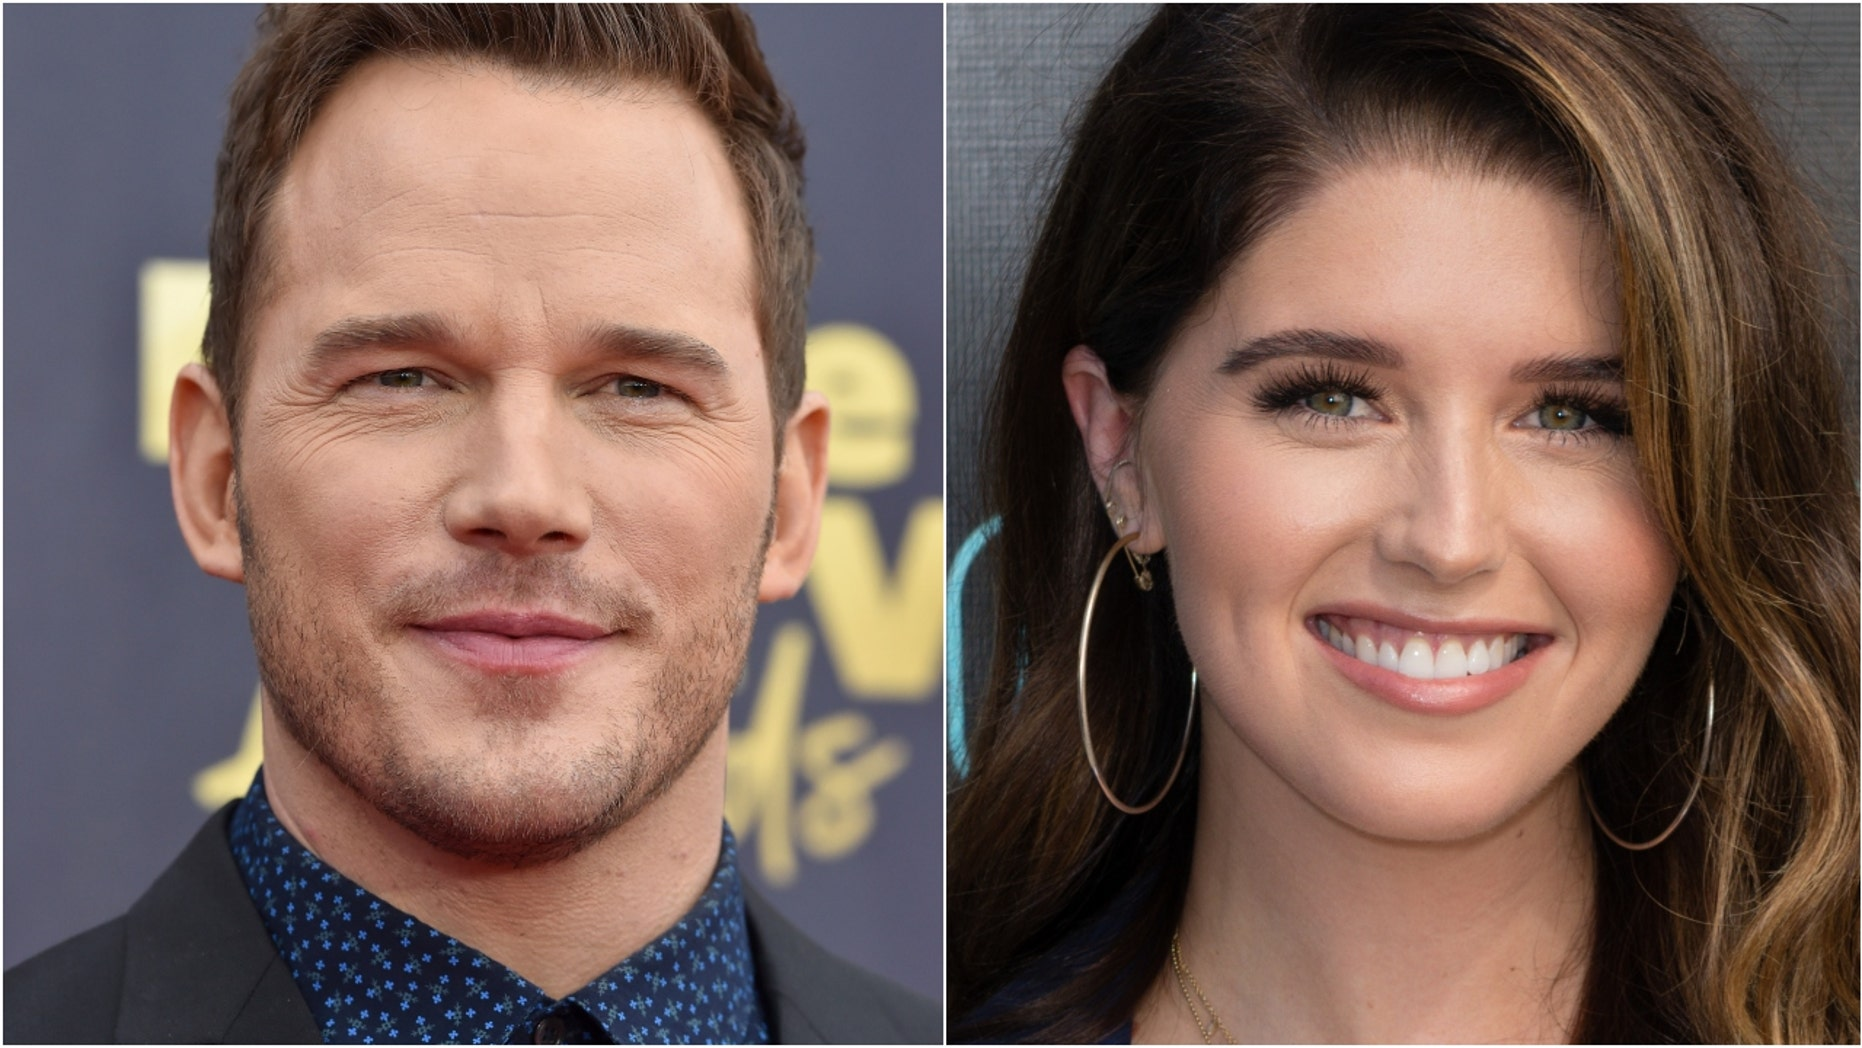 Chris Pratt announces whirlwind engagement to Katherine Schwarzenegger